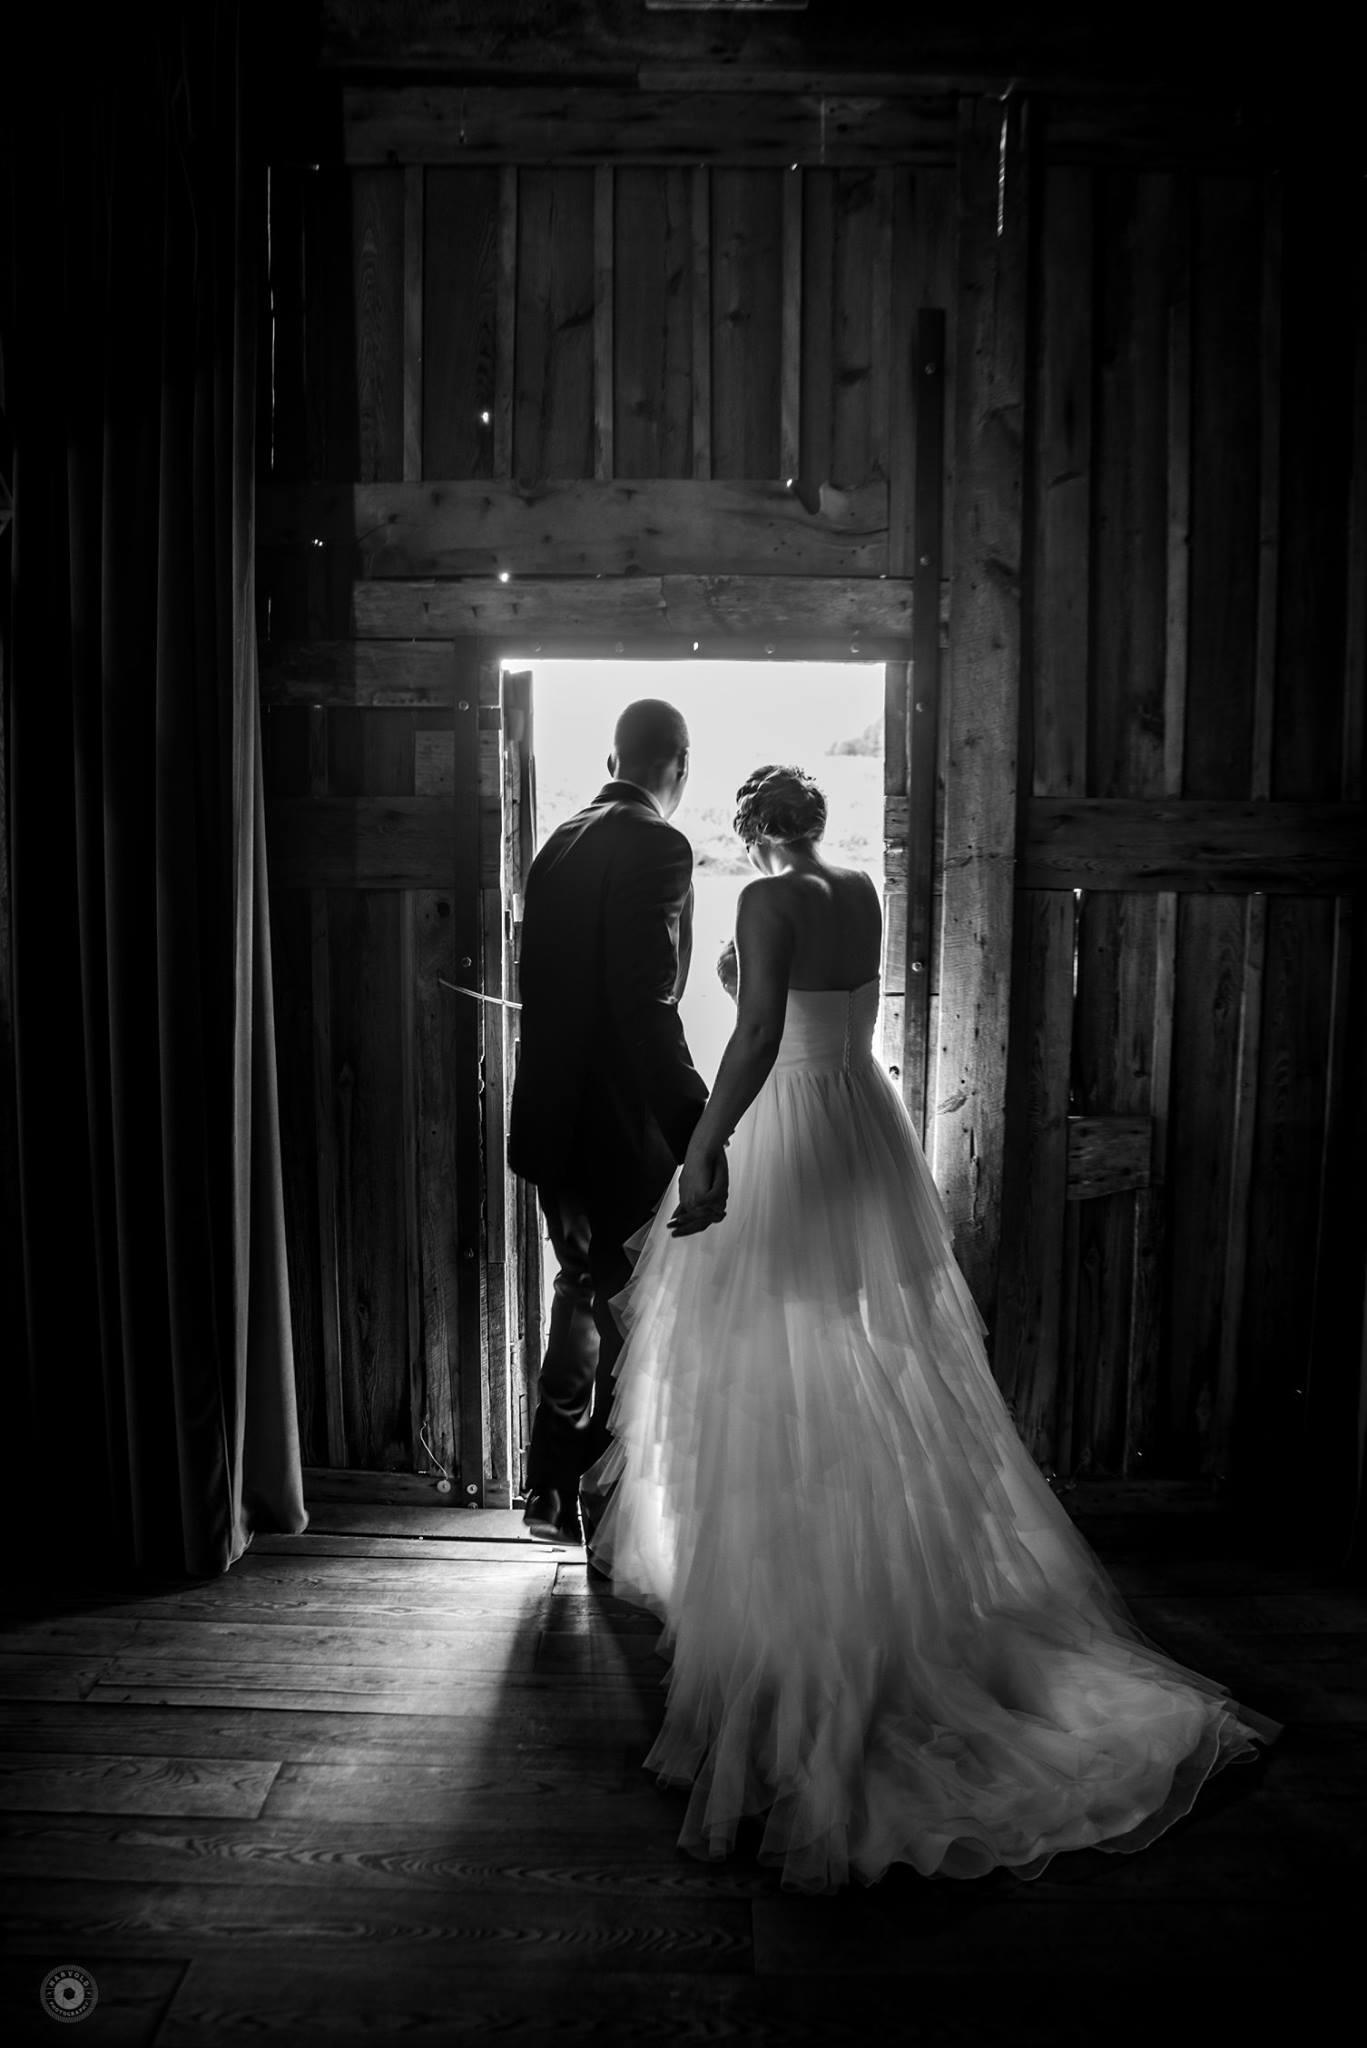 couple walking through doorway of a barn from dark inside to light outside